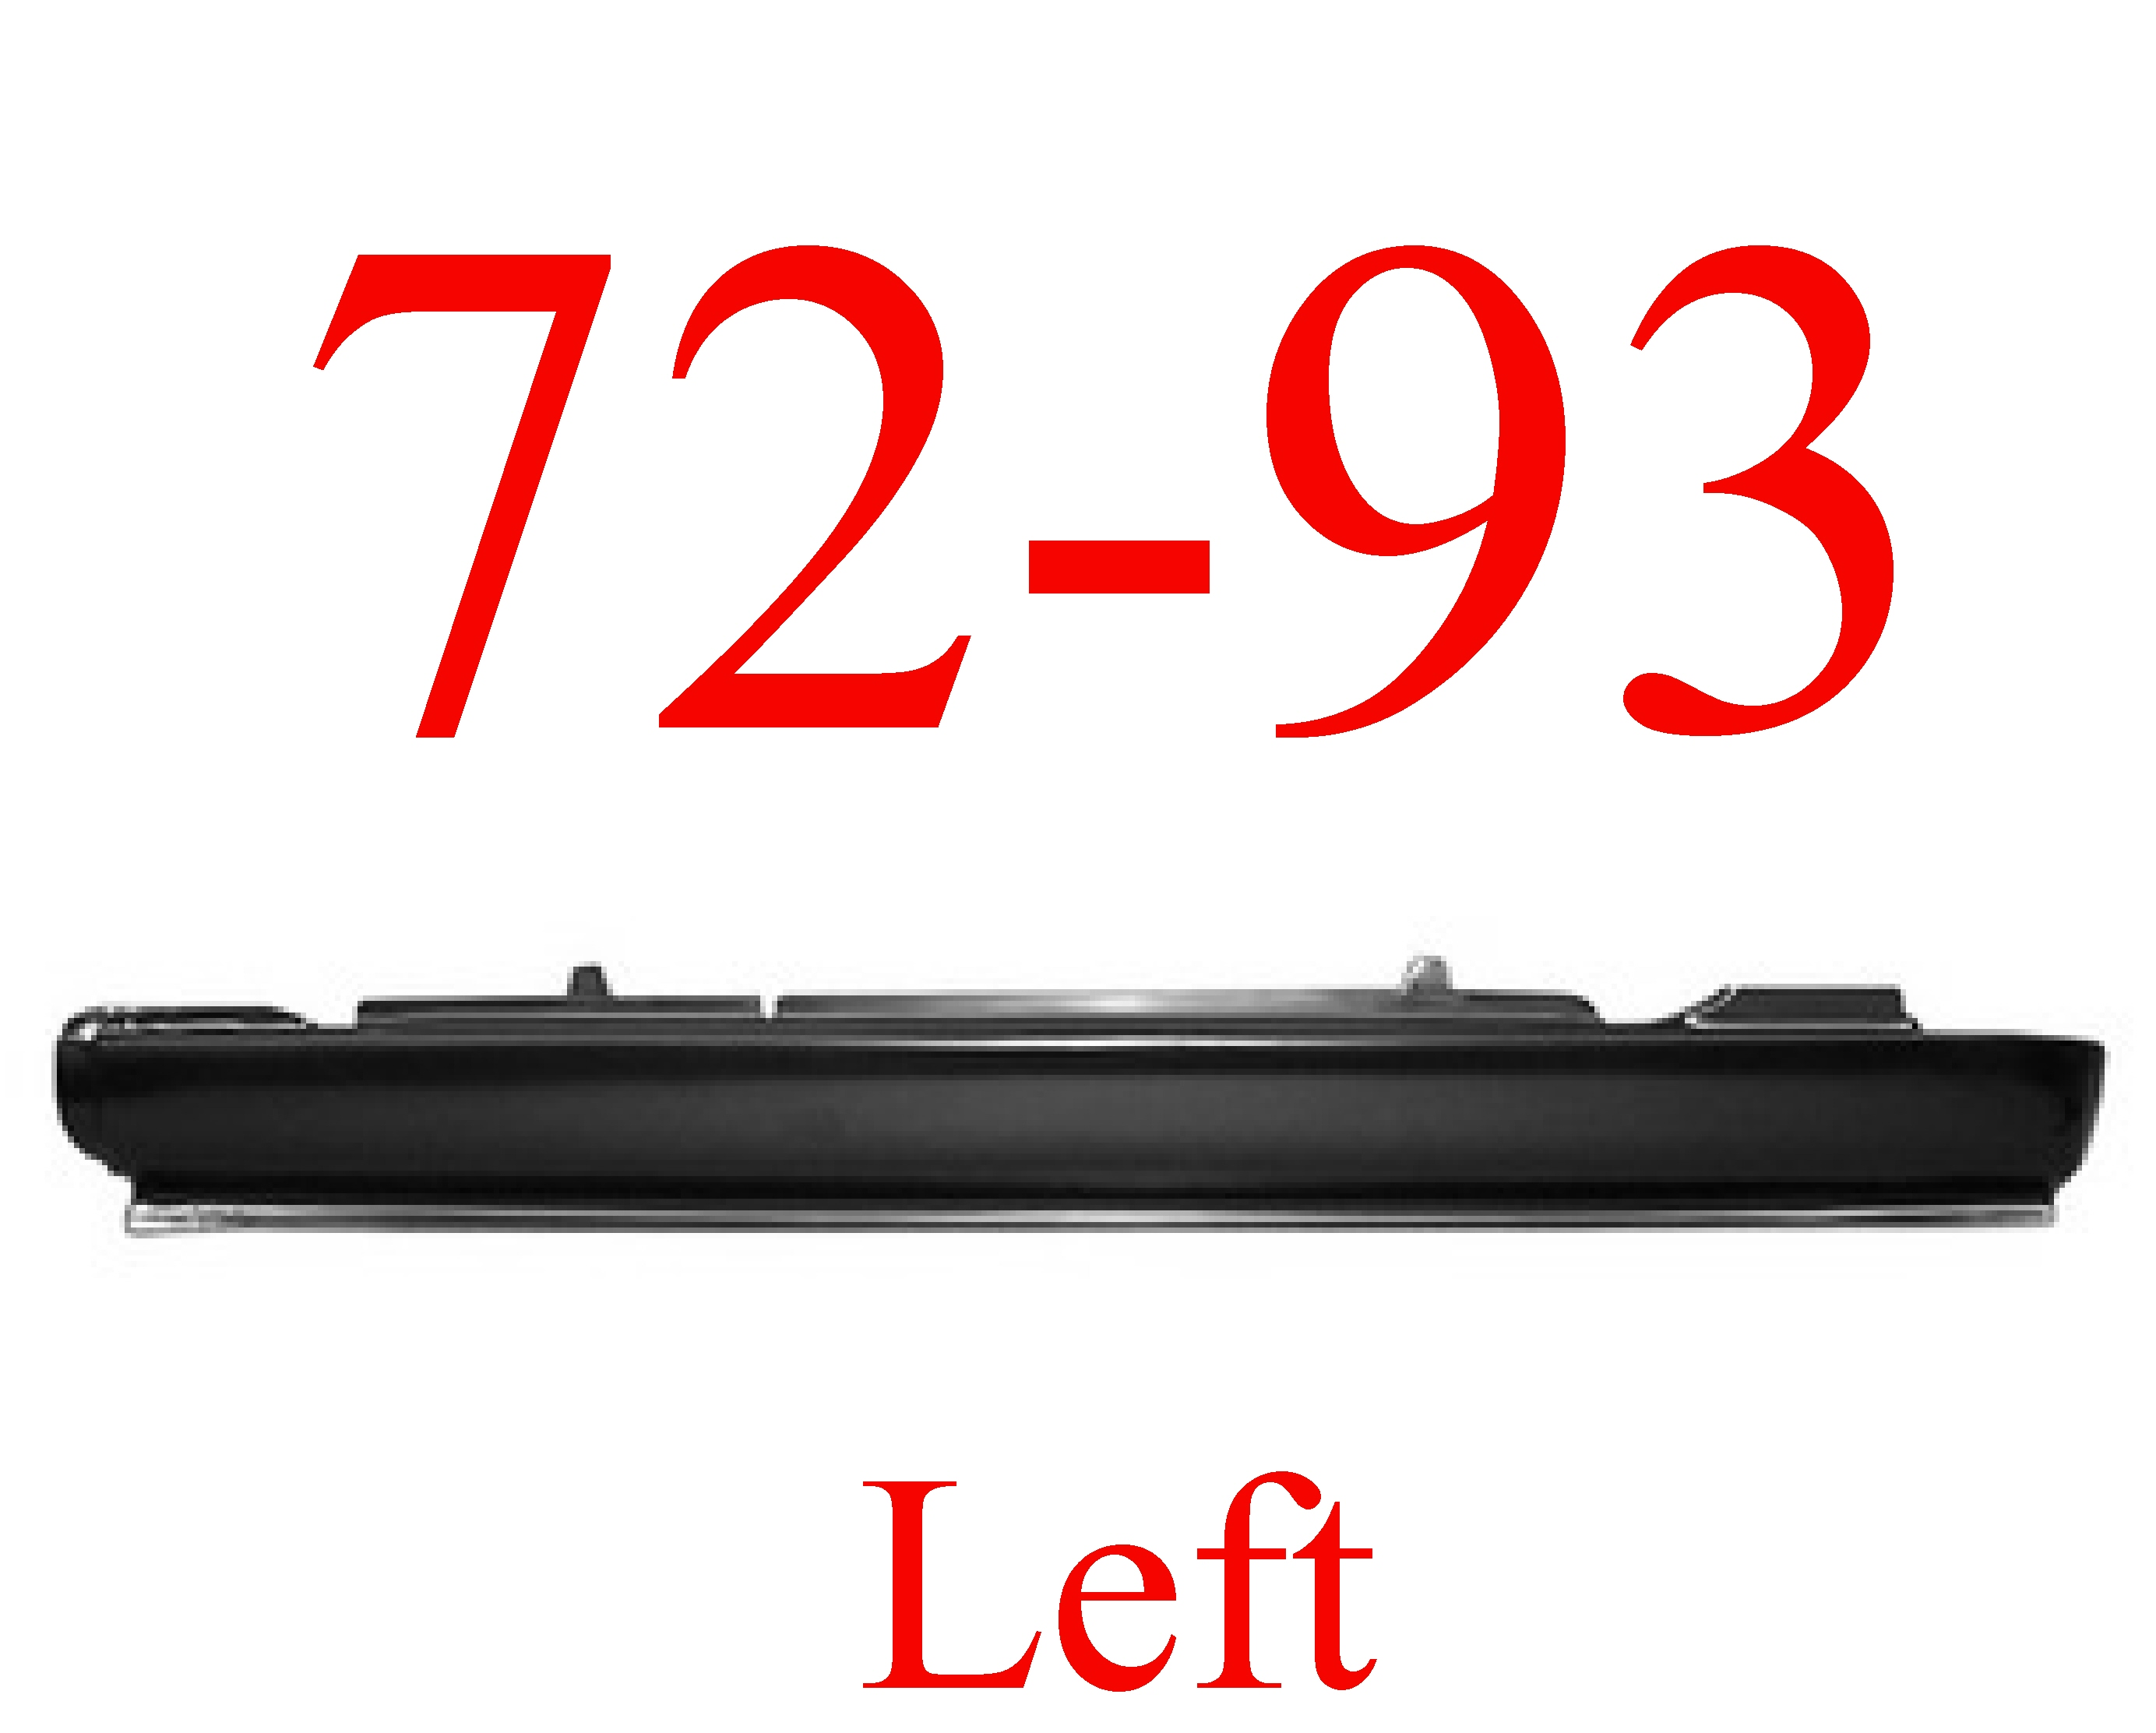 72-93 Dodge Ram LEFT Extended Rocker Panel